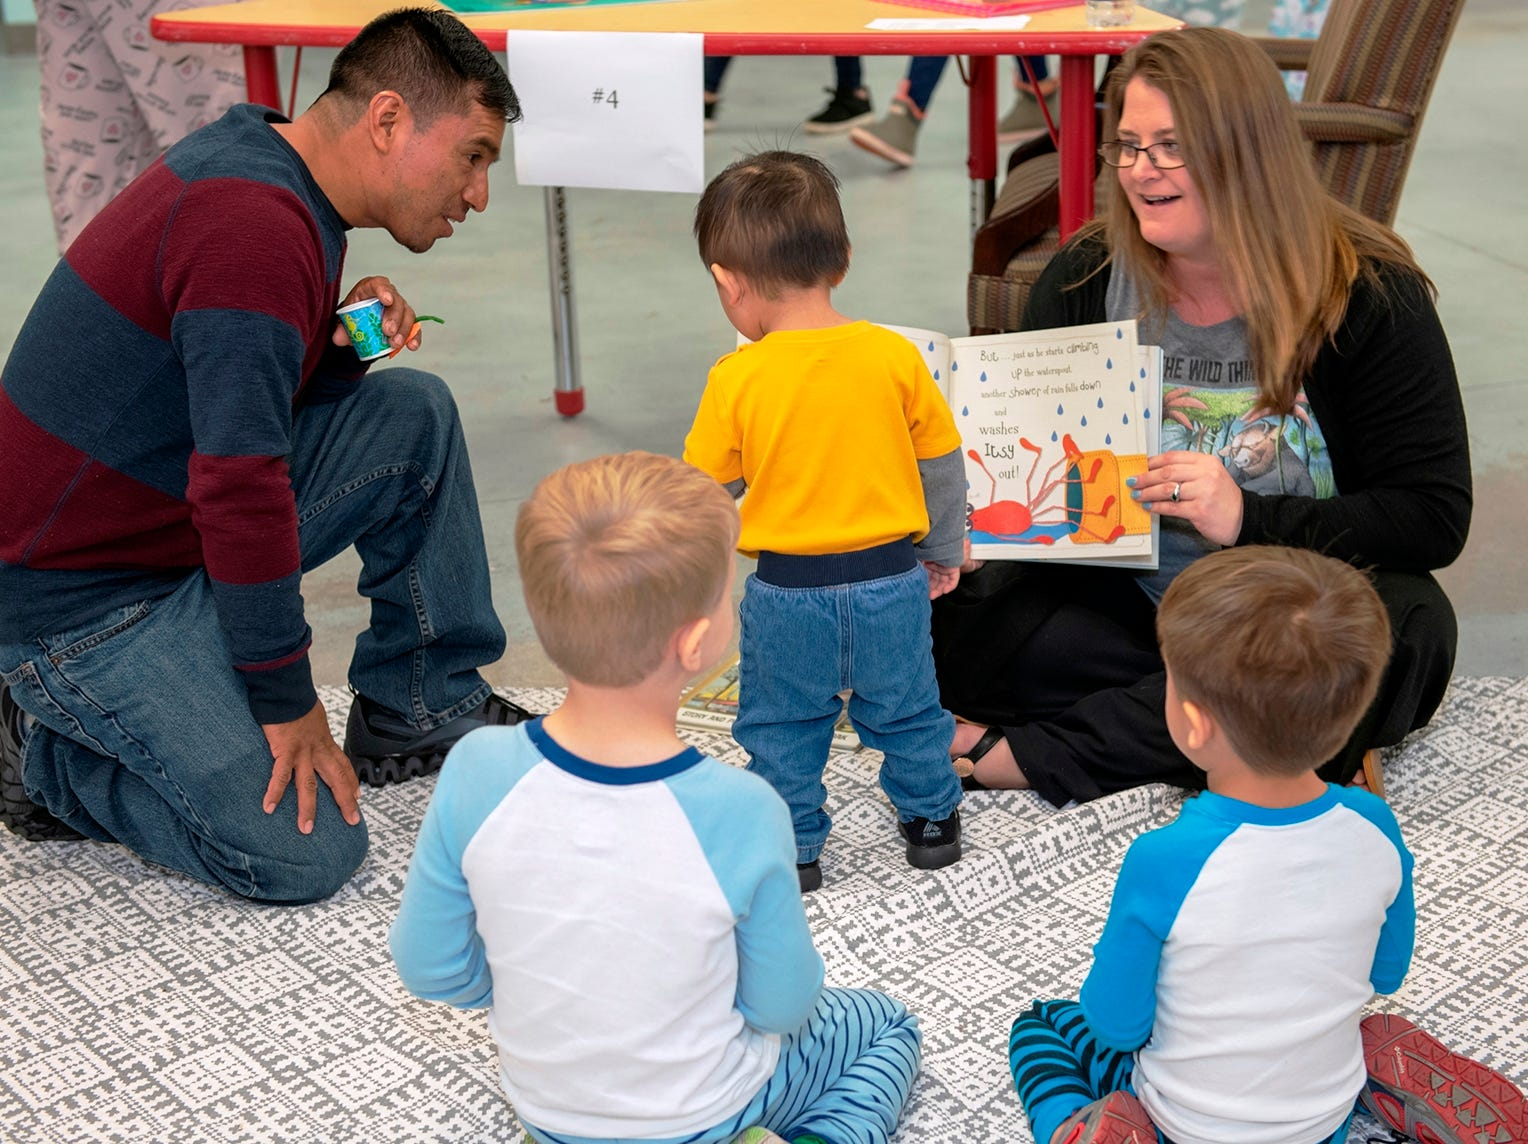 Guest reader Erin Russell, right, director of Global Learning Preschool, shows a book to children at the Pajama Jam.